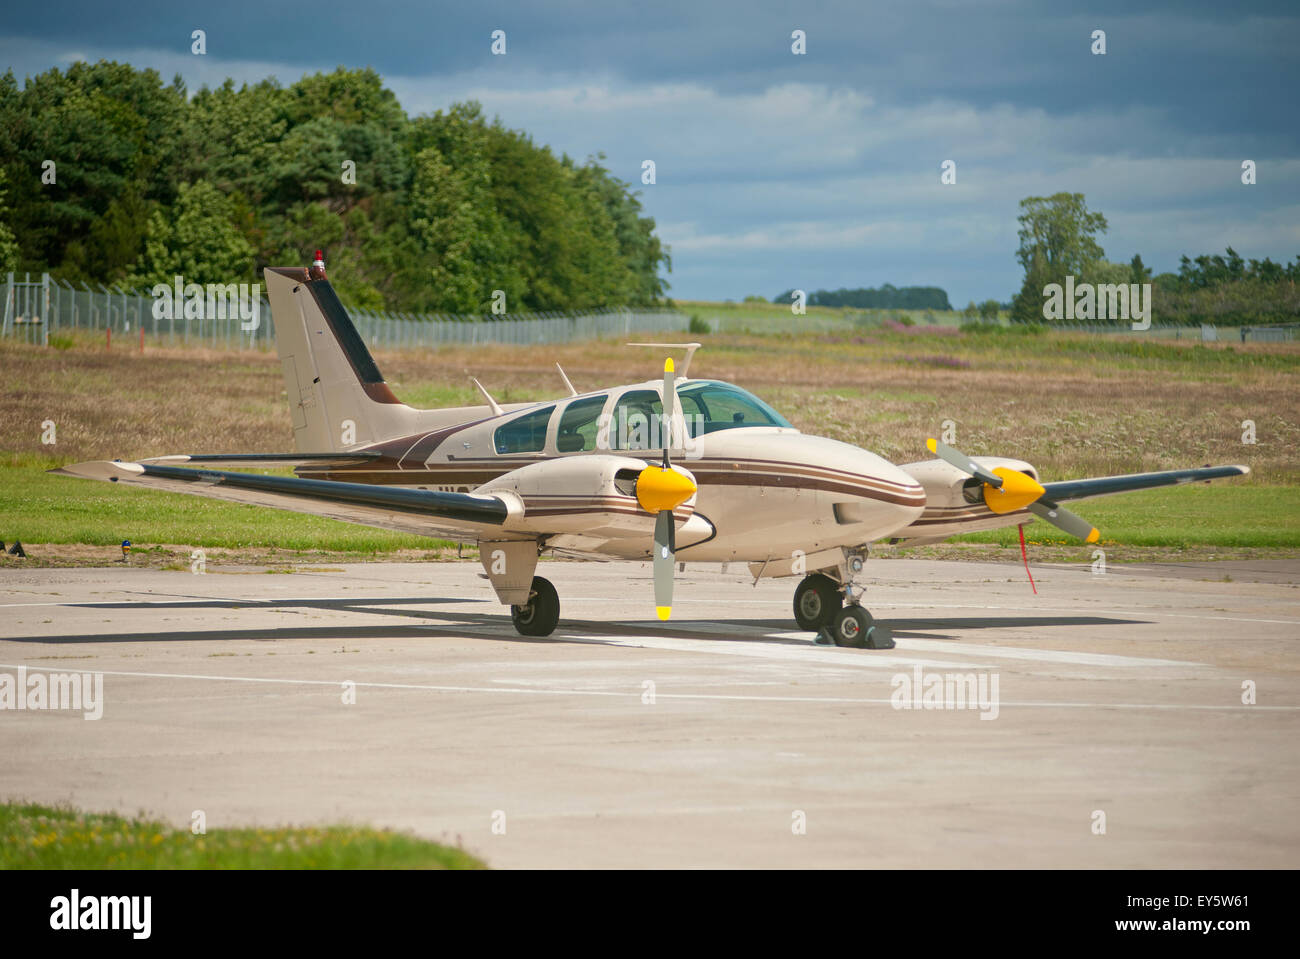 Civil Registered Aircraft operating through Inverness Dalcross Airport in Northern Scotland. - Stock Image